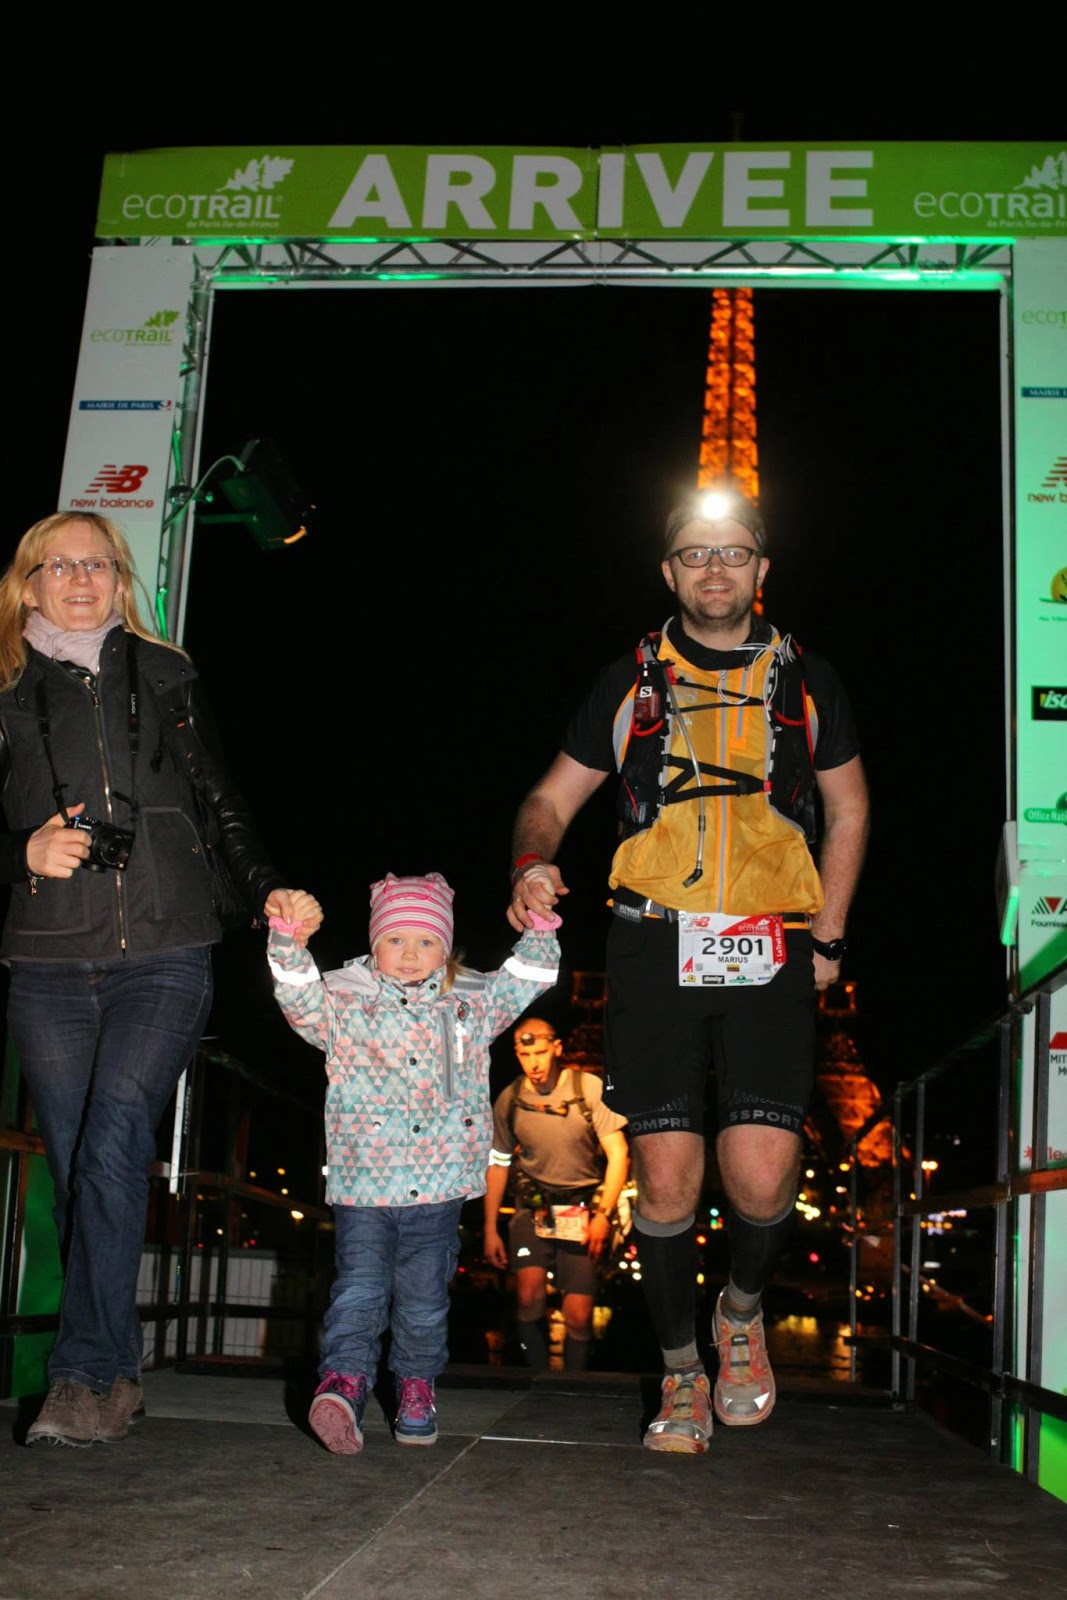 Eco Trailrunning de Paris (80k) #7